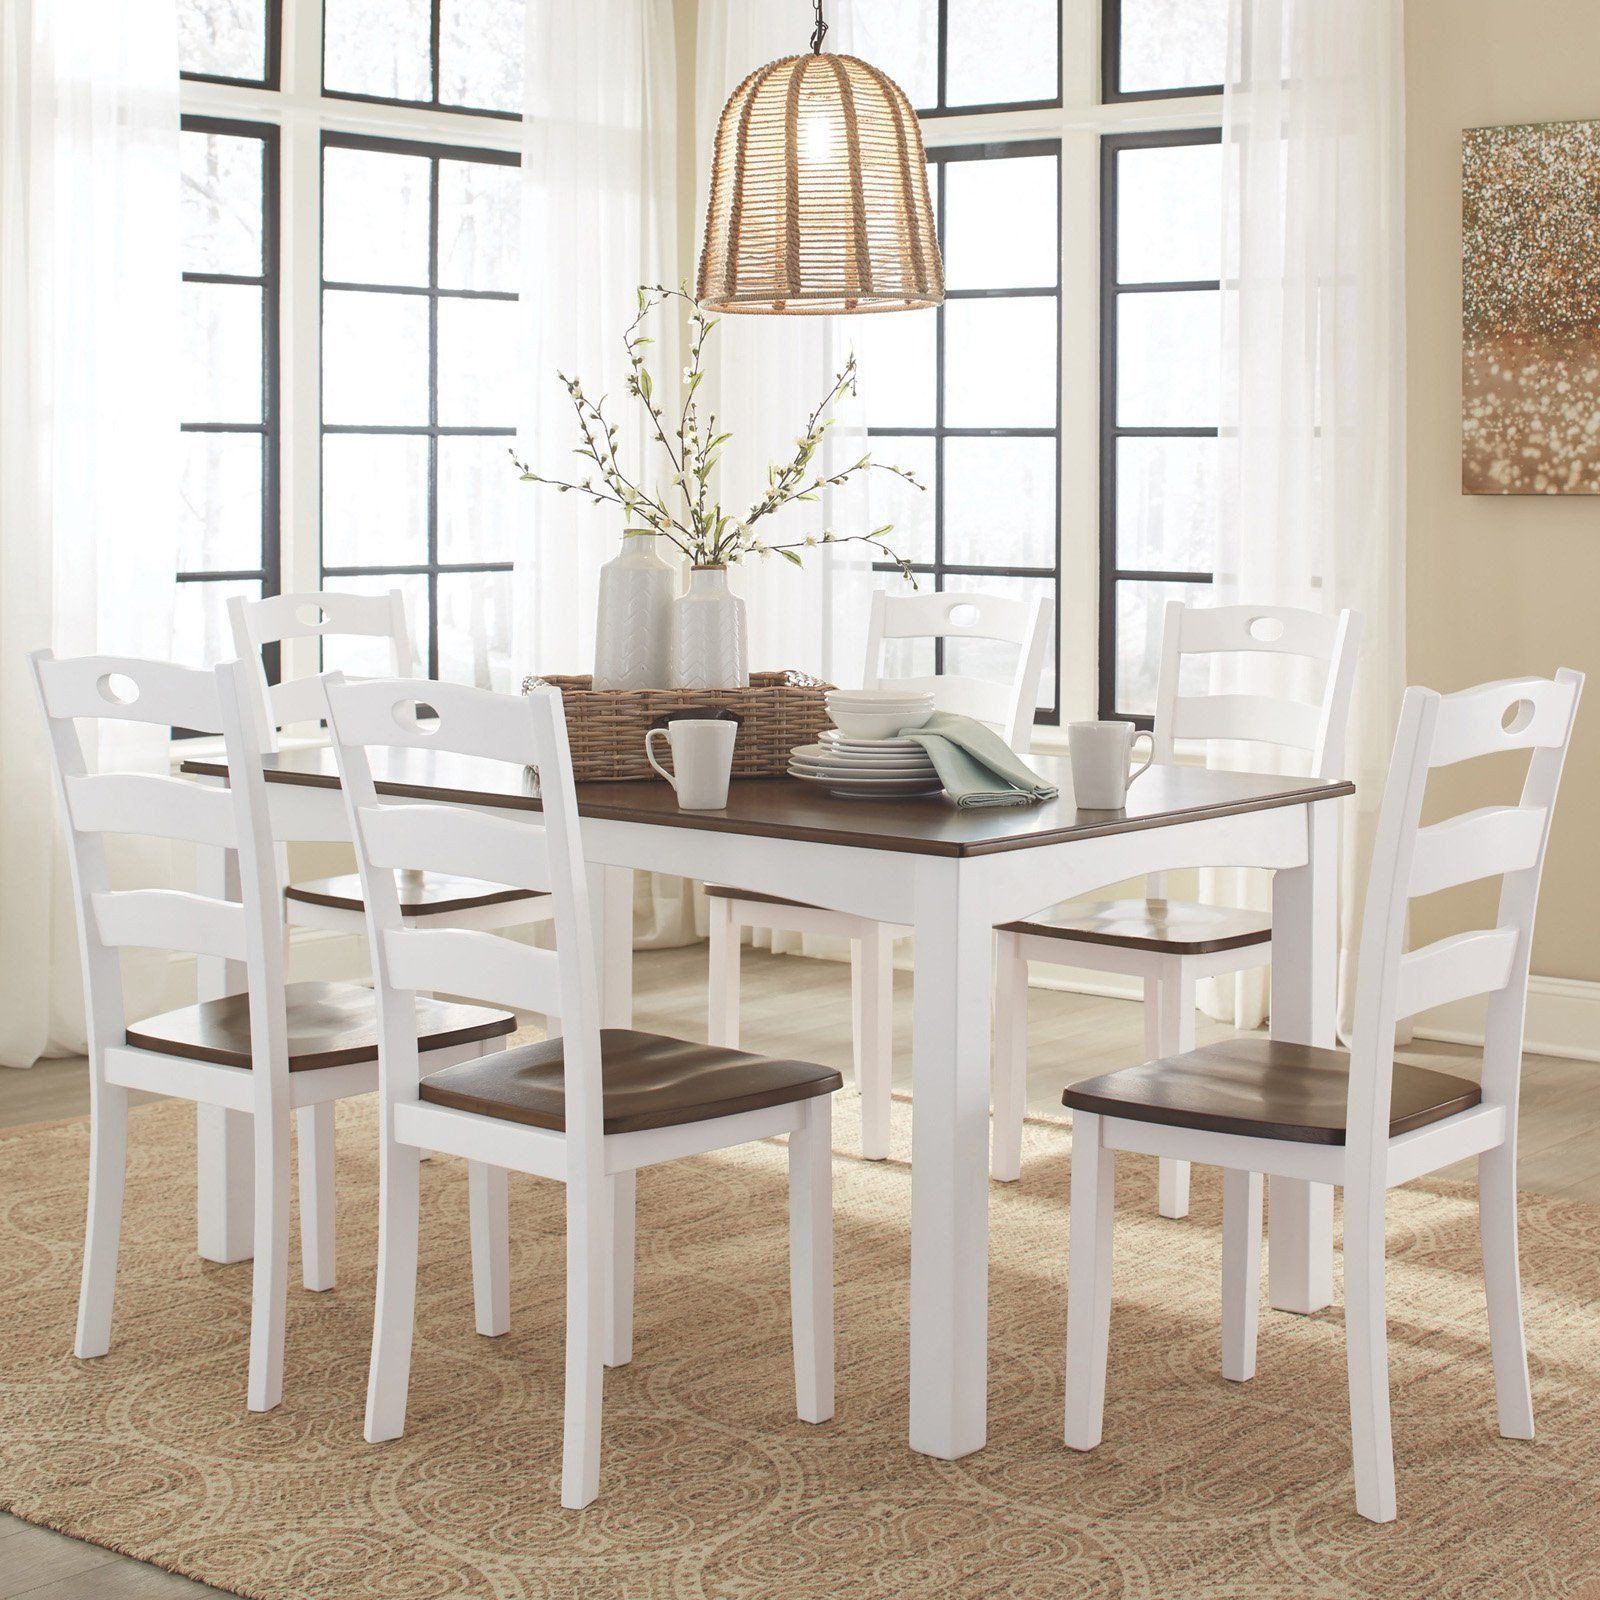 40++ Woodanville dining room table and chairs Trend